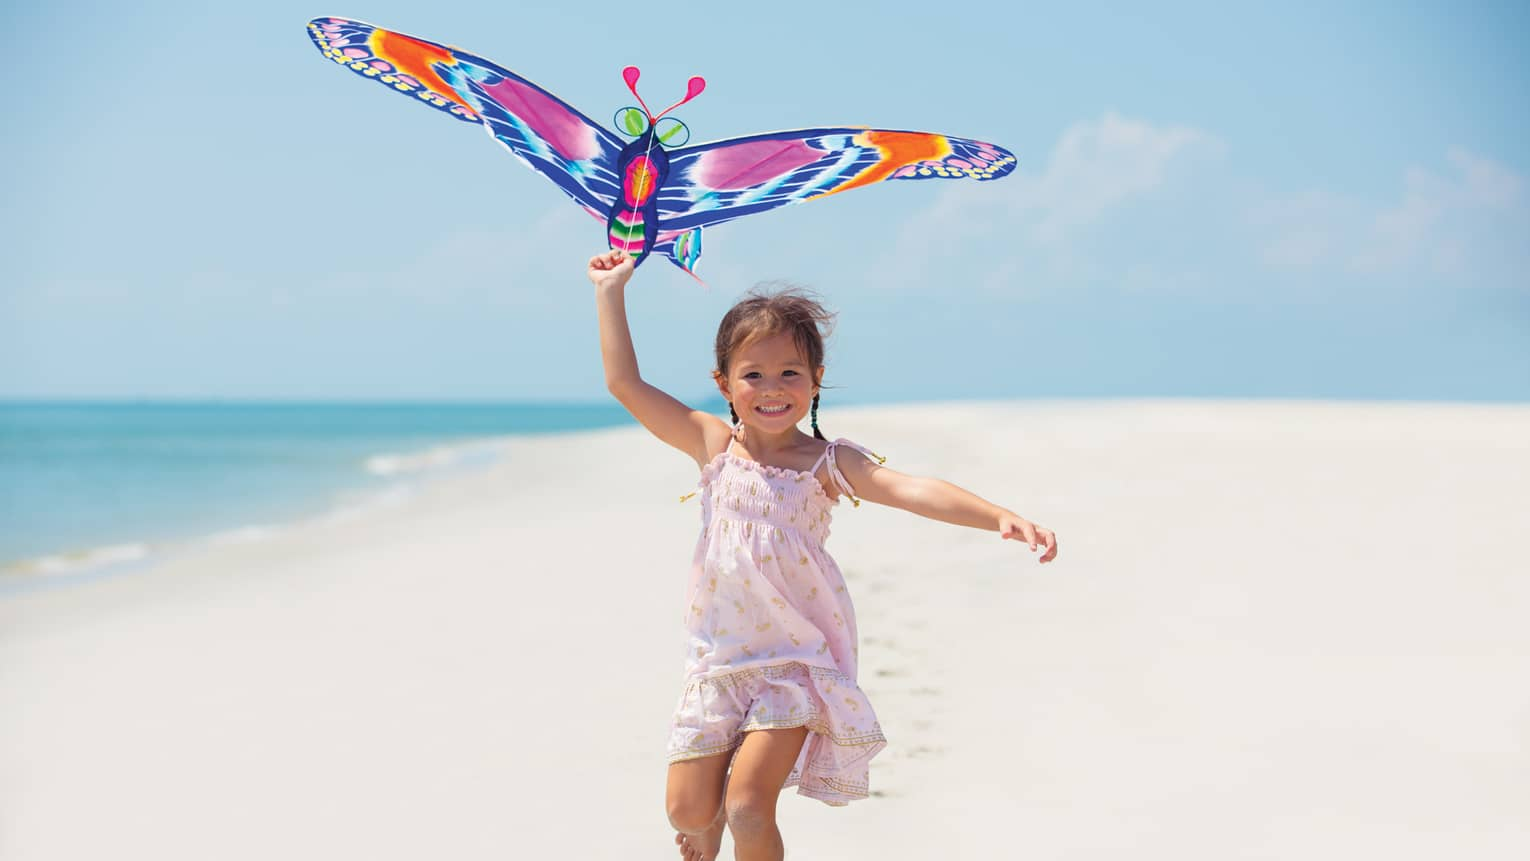 Young girl runs with colourful butterfly kite on white sand beach